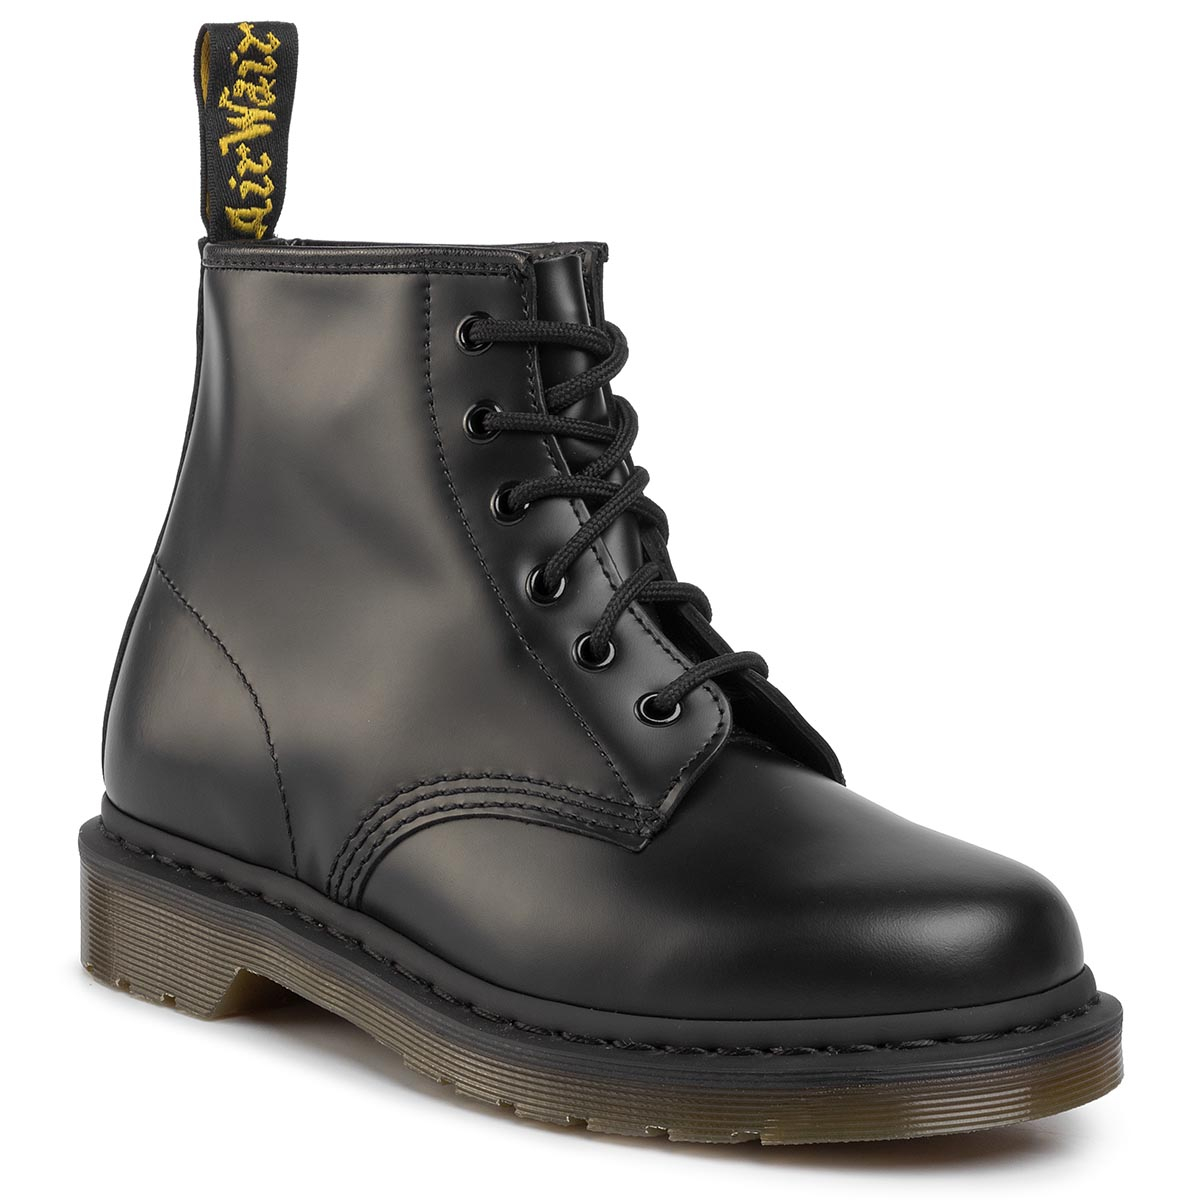 Image of Anfibi DR. MARTENS - 101 Smooth 10064001 Black